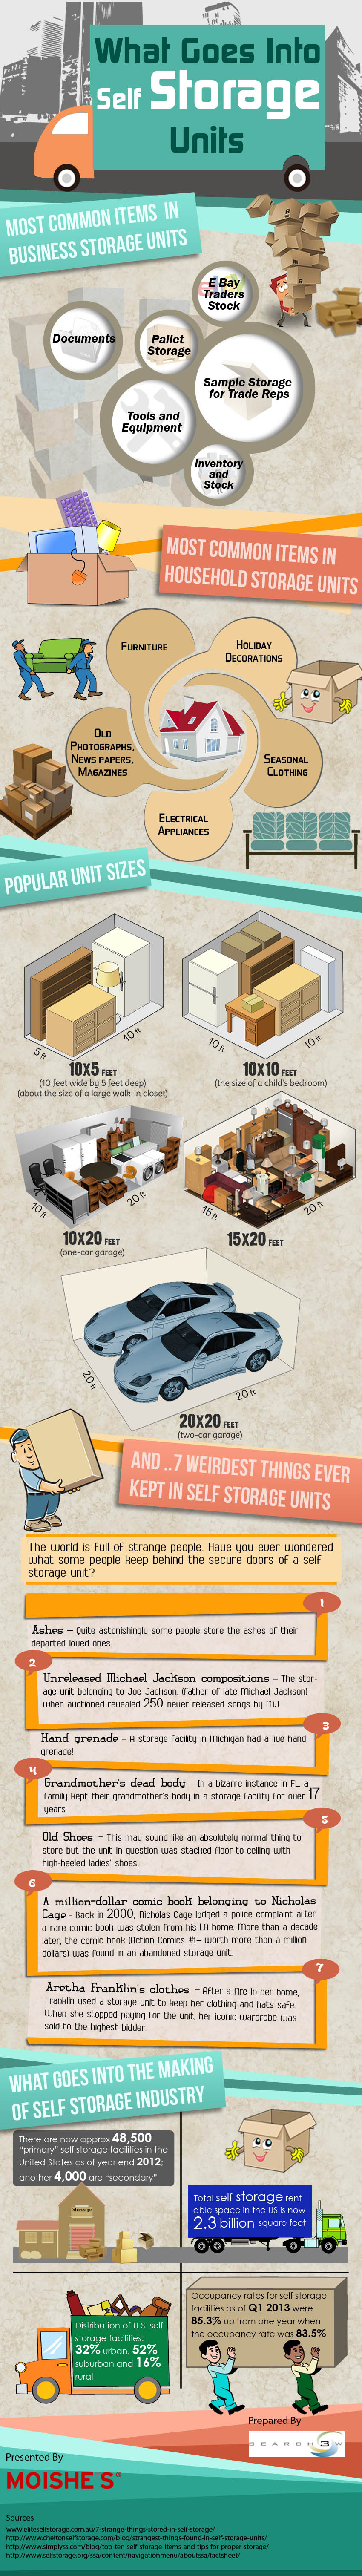 What goes into self storage units infographic